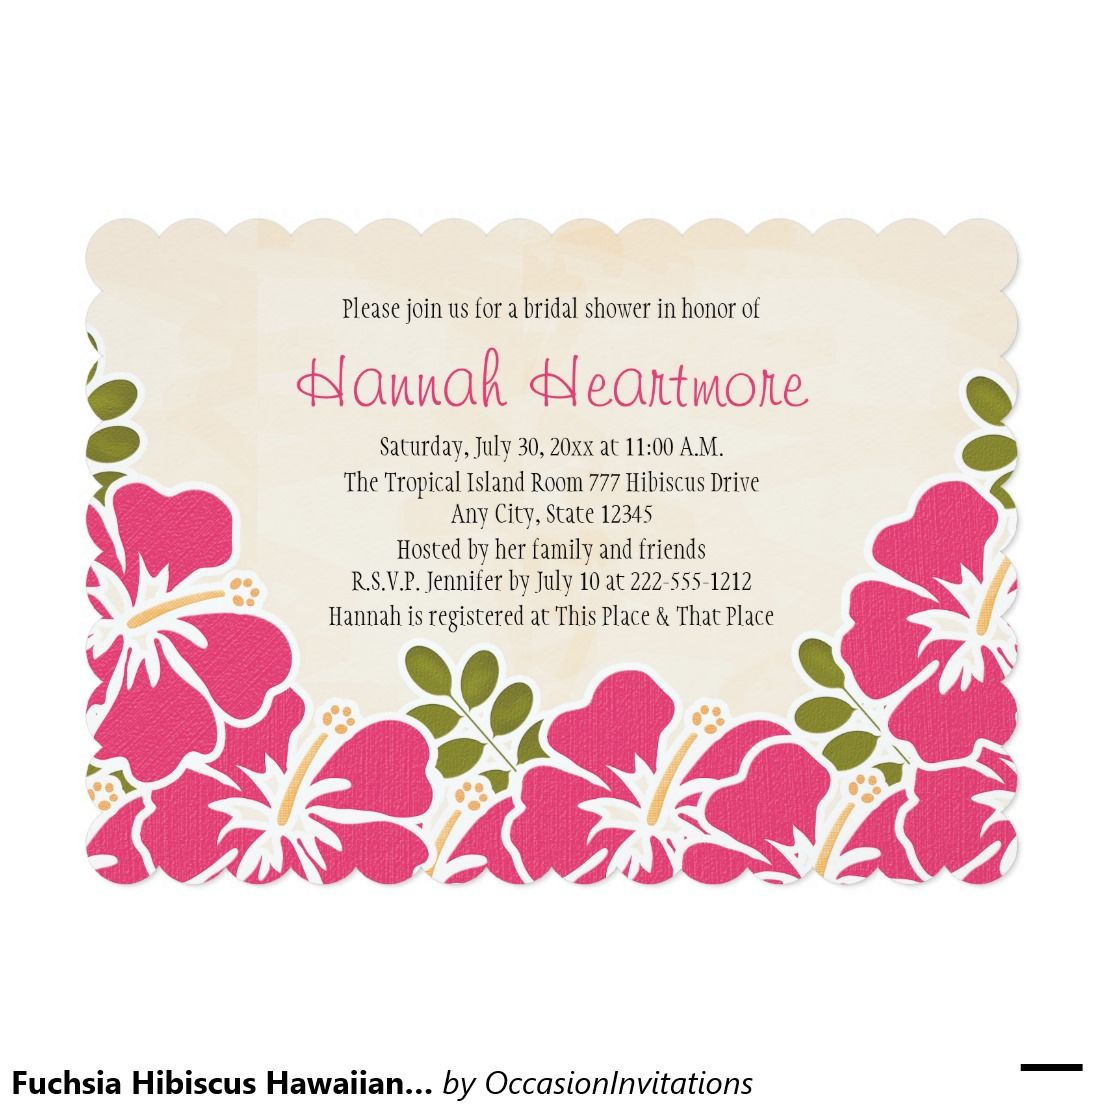 fuchsia hibiscus hawaiian themed bridal shower invitation